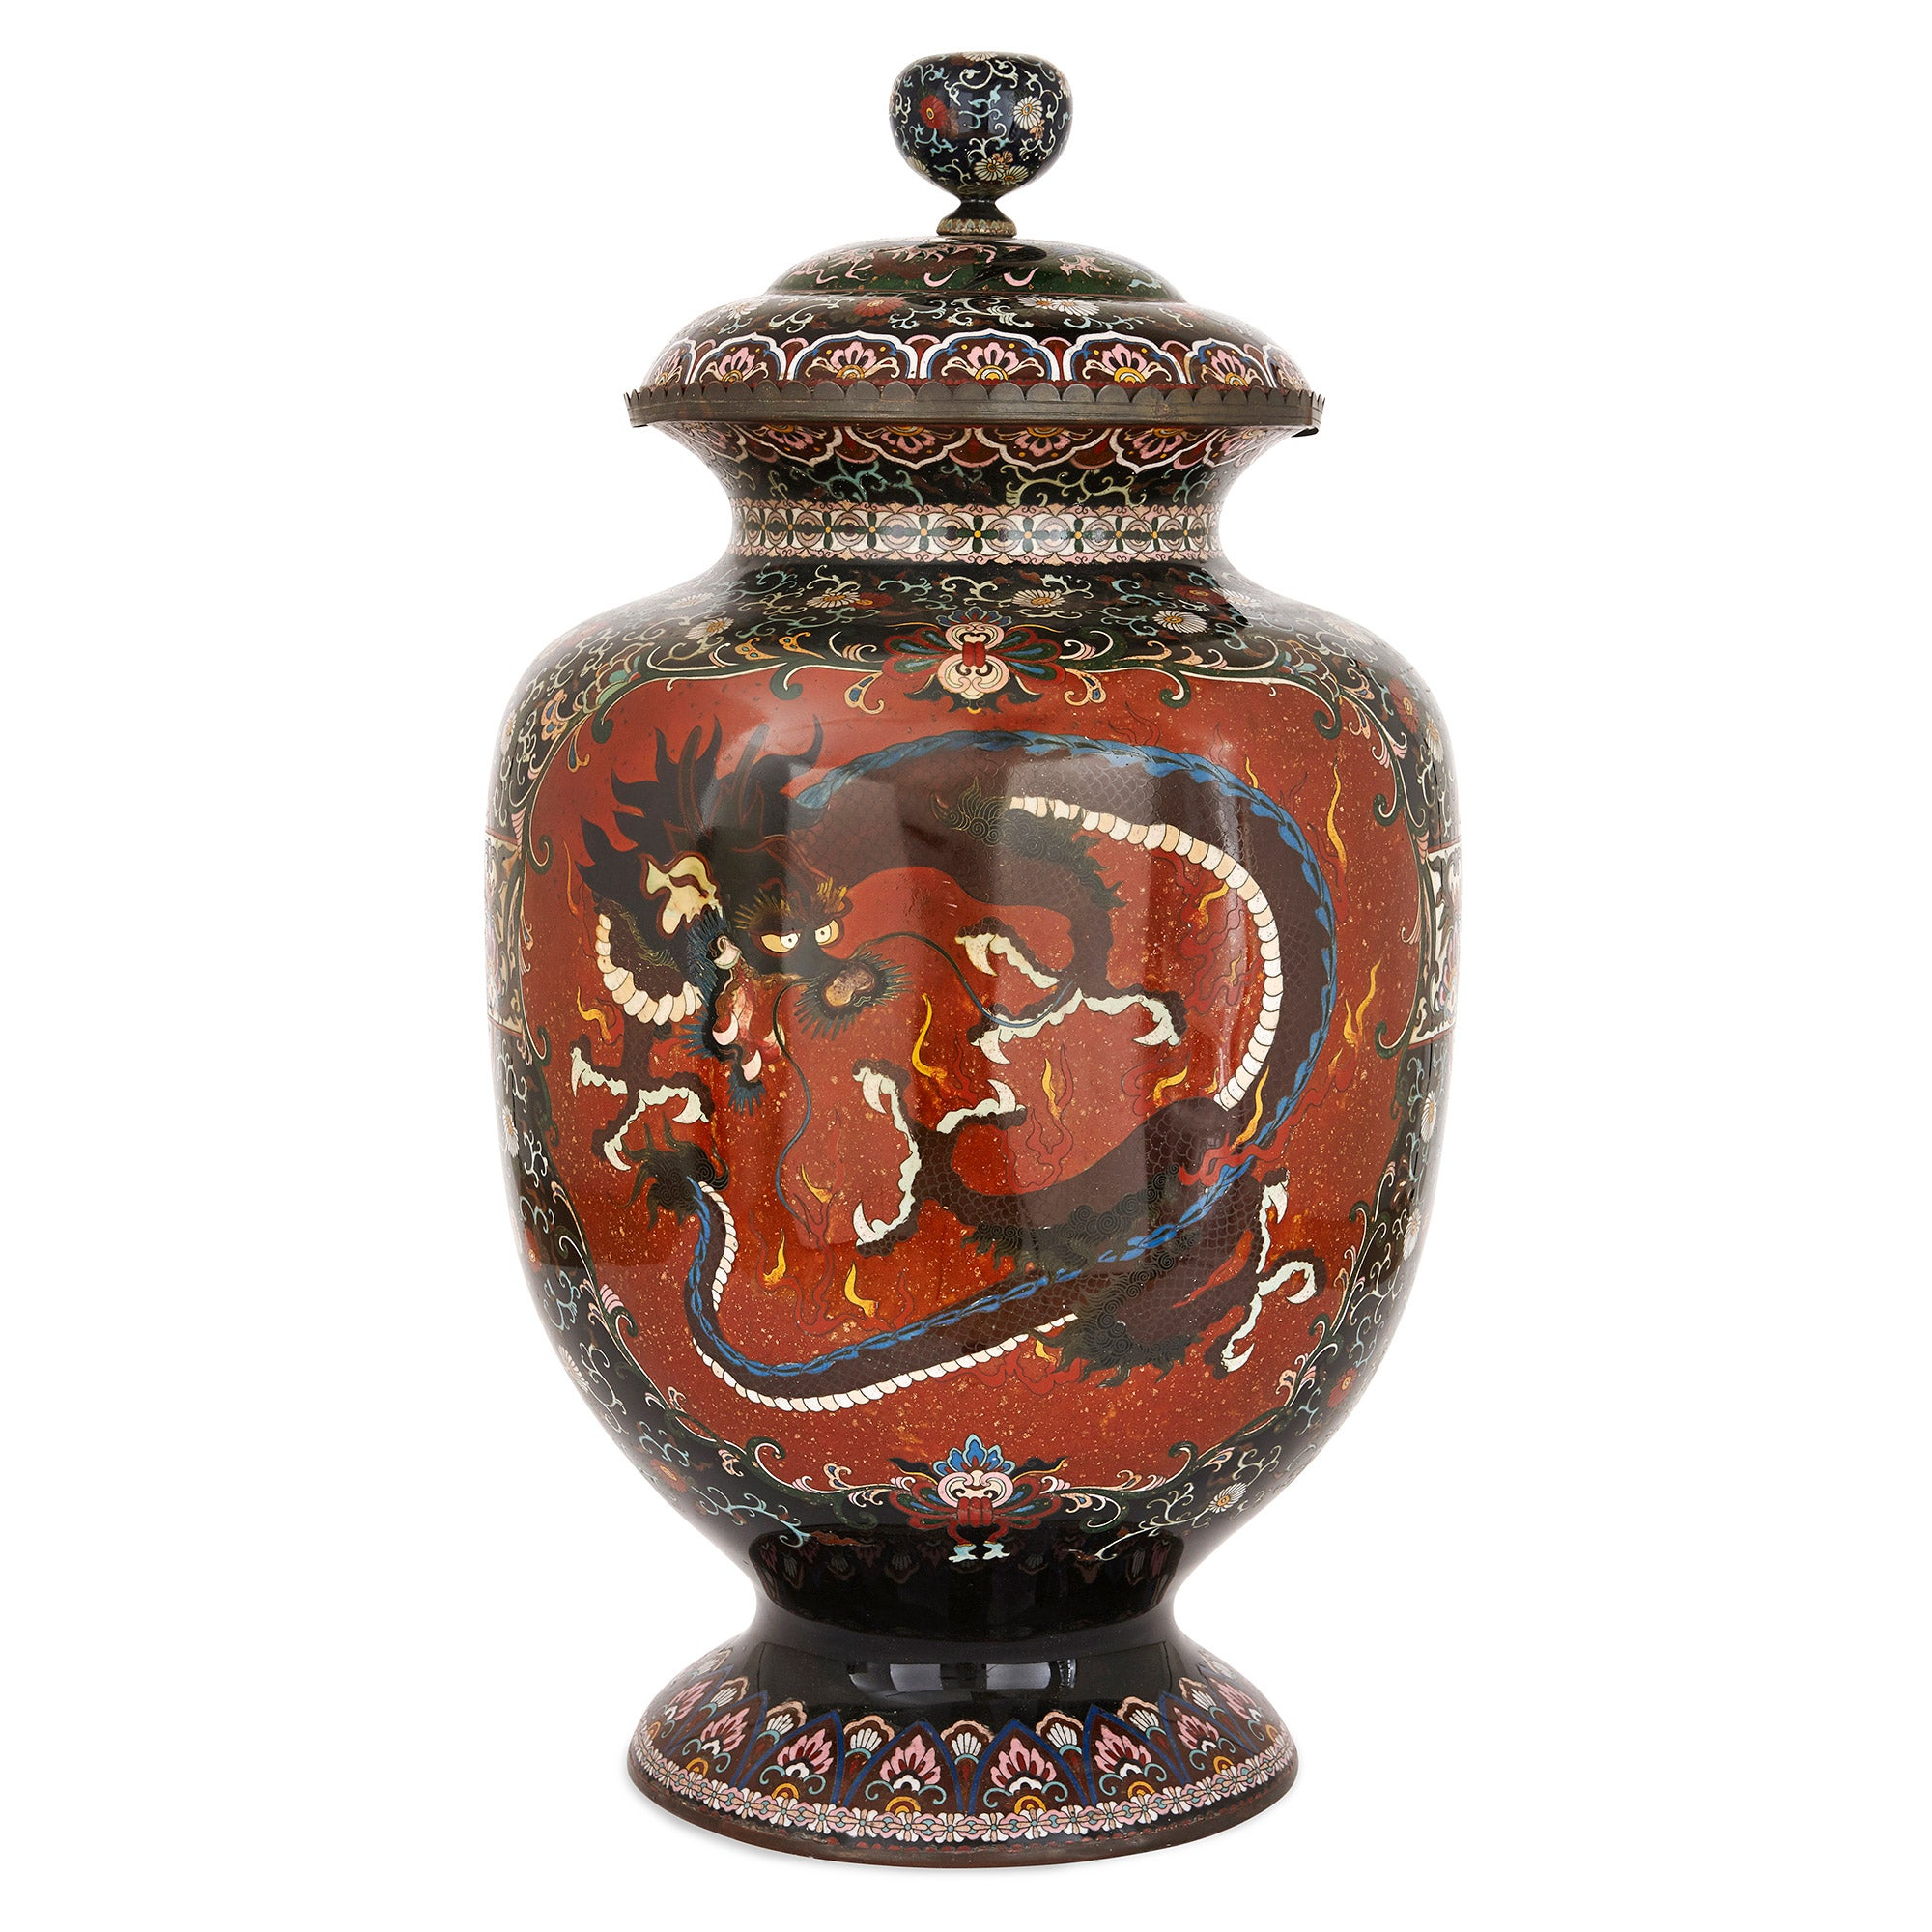 19th Century Cloisonné Enamel Dragon Vase, Meiji Period Japan